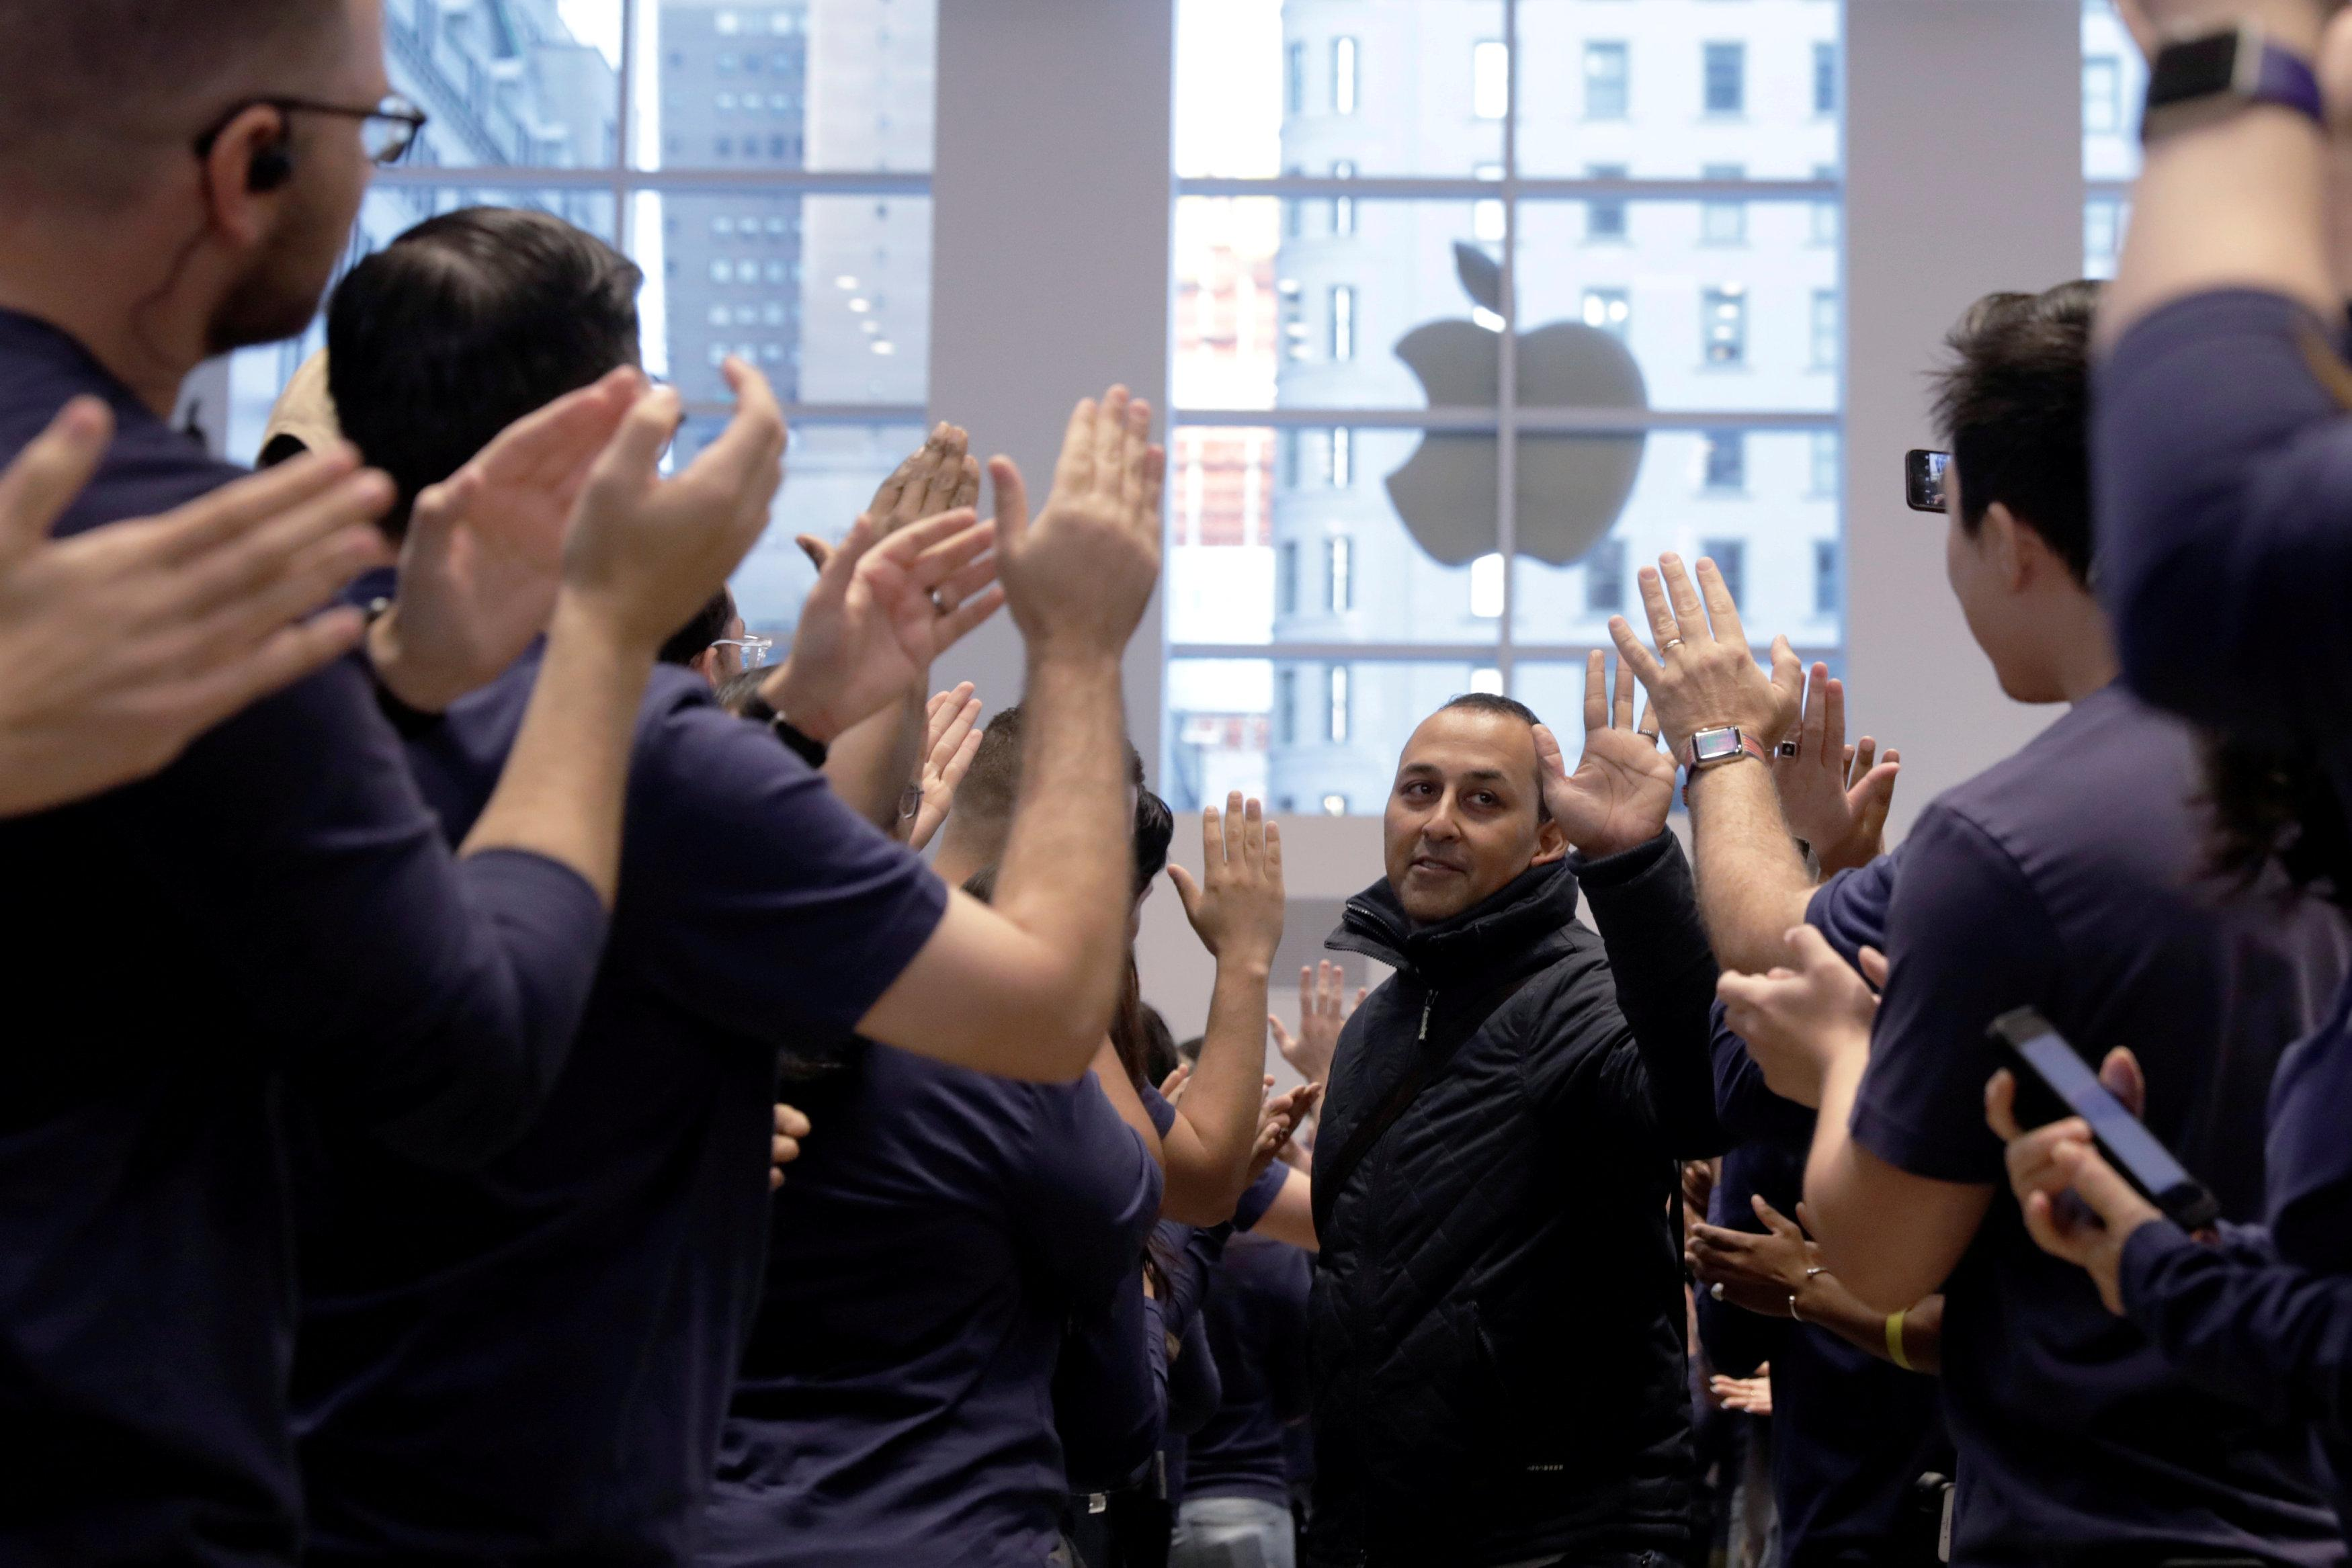 A customer is greeted by Apple employees as he enters an Apple store to purchase an iPhone X in New York, U.S., November 3, 2017.  Lucas Jackson